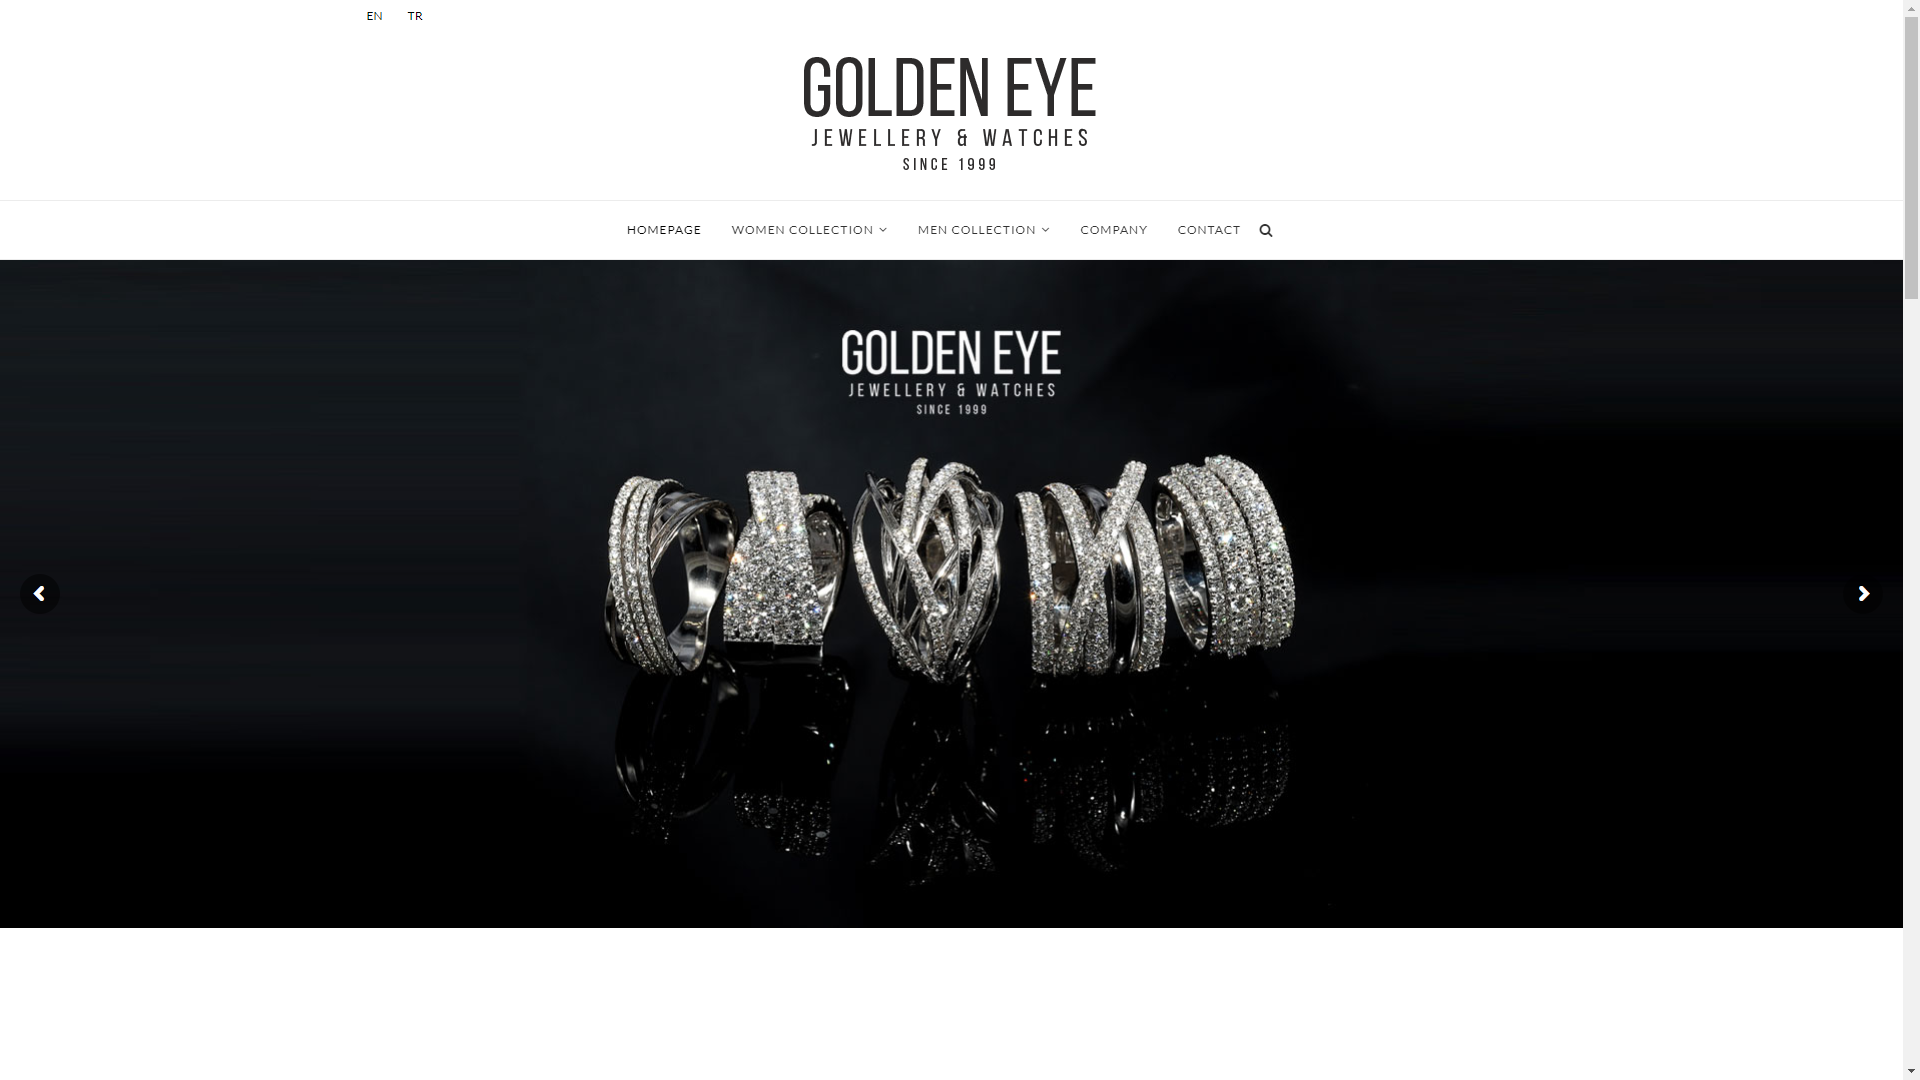 webfili-Alanya-Jewelry-Shop-Golden-Eye-yenilendi-01 .PNG